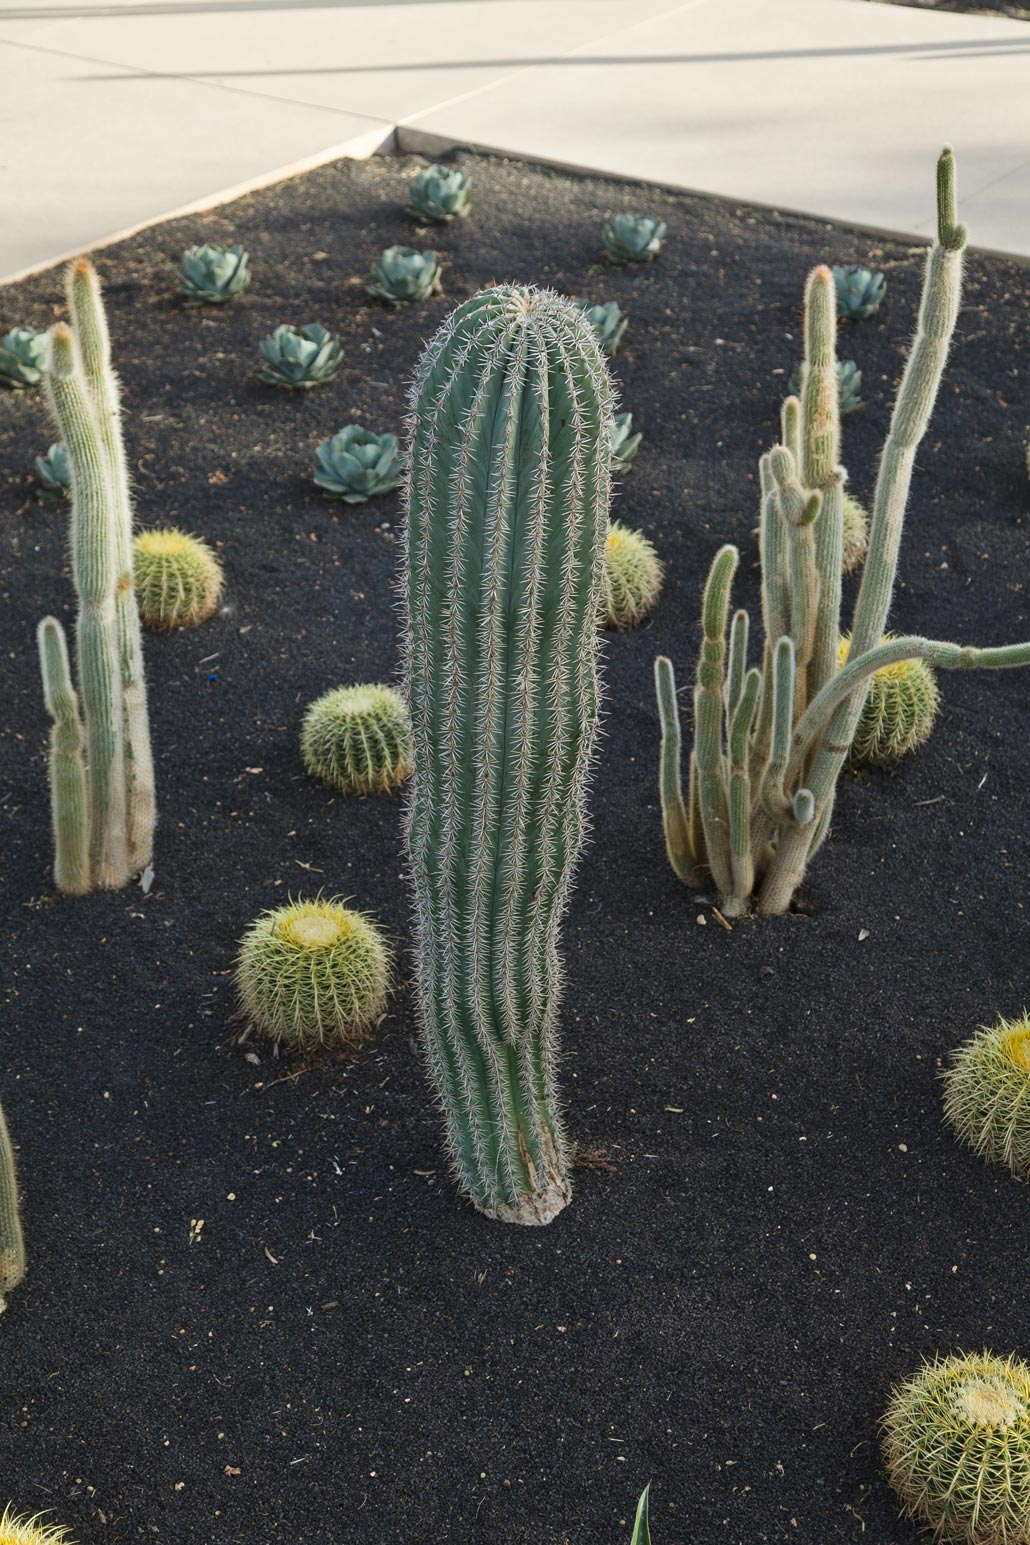 A small Cardon cactus, about 3 feet tall, among various species in the specimen bed at Sunnylands Center and Gardens.